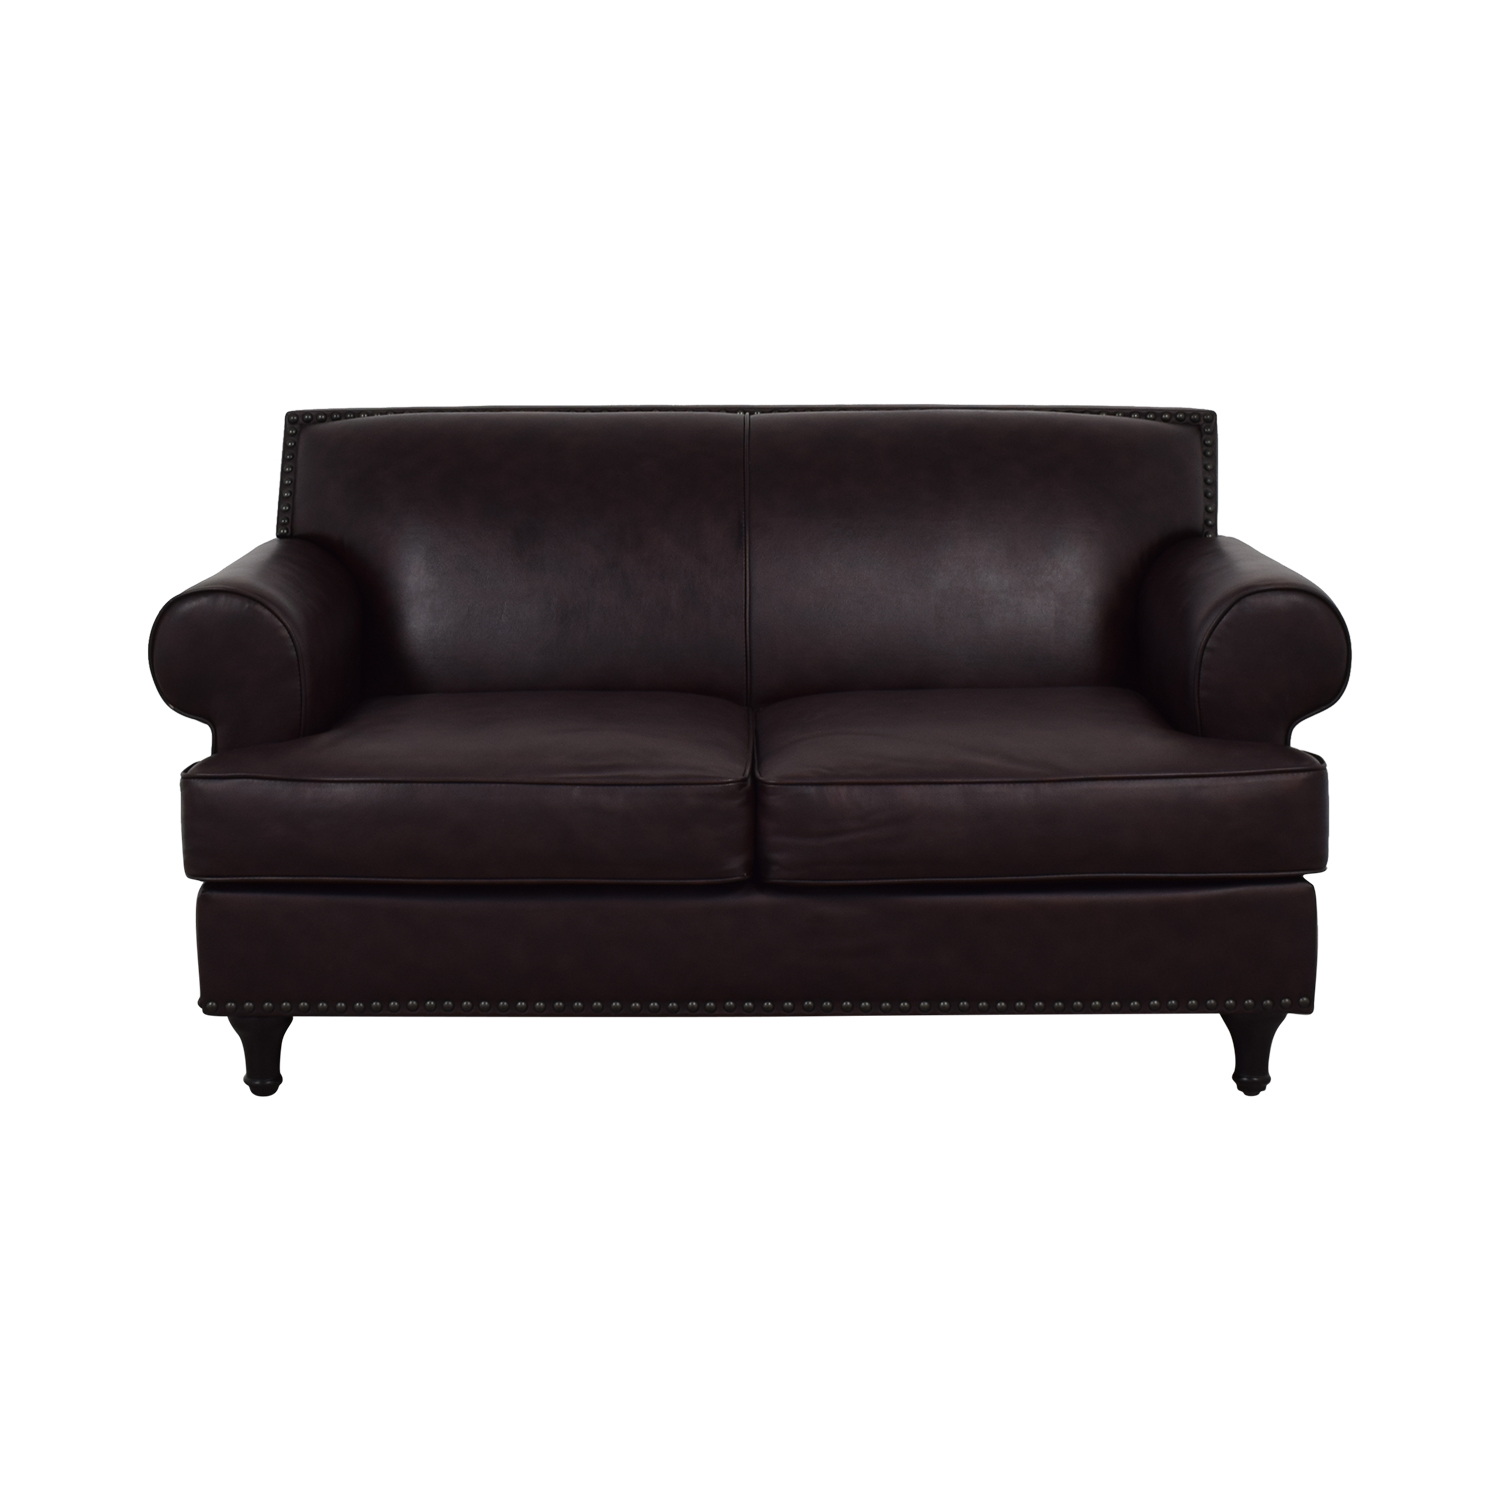 Pier 1 Imports Pier 1 Imports Brown Leather Love Seat dimensions